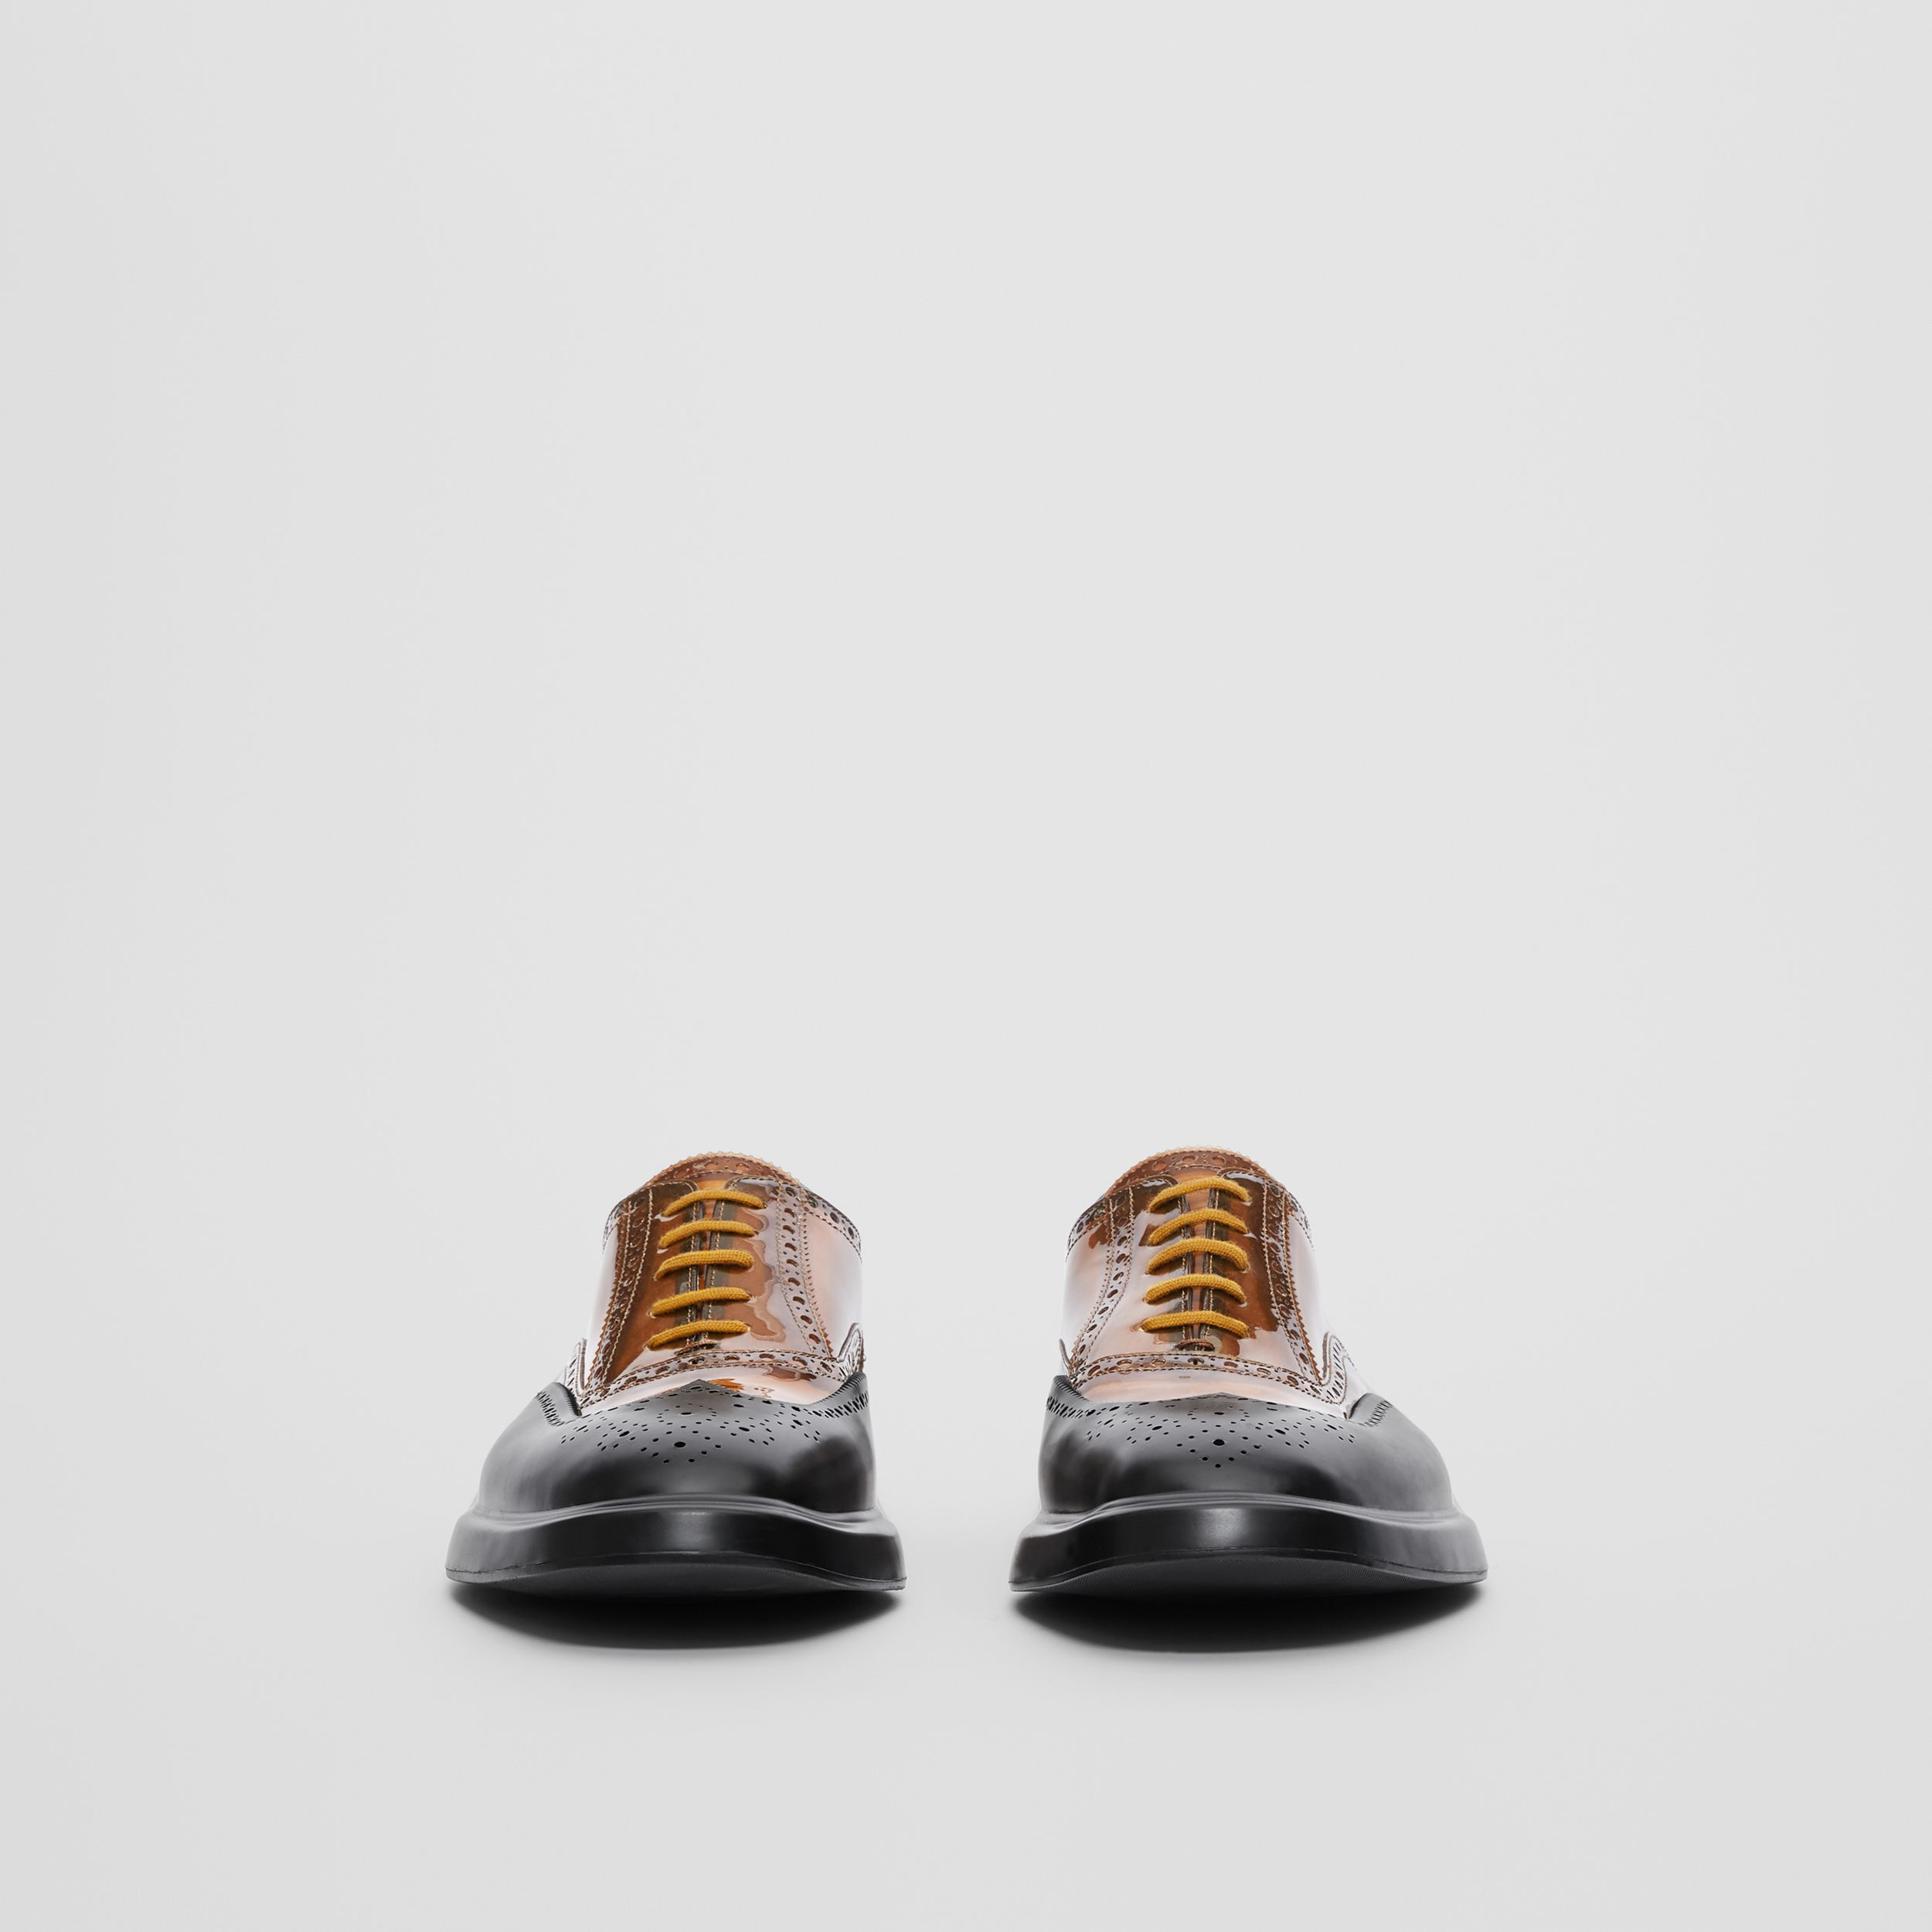 Toe Cap Detail Vinyl and Leather Oxford Brogues in Brown/black - Men | Burberry - 4